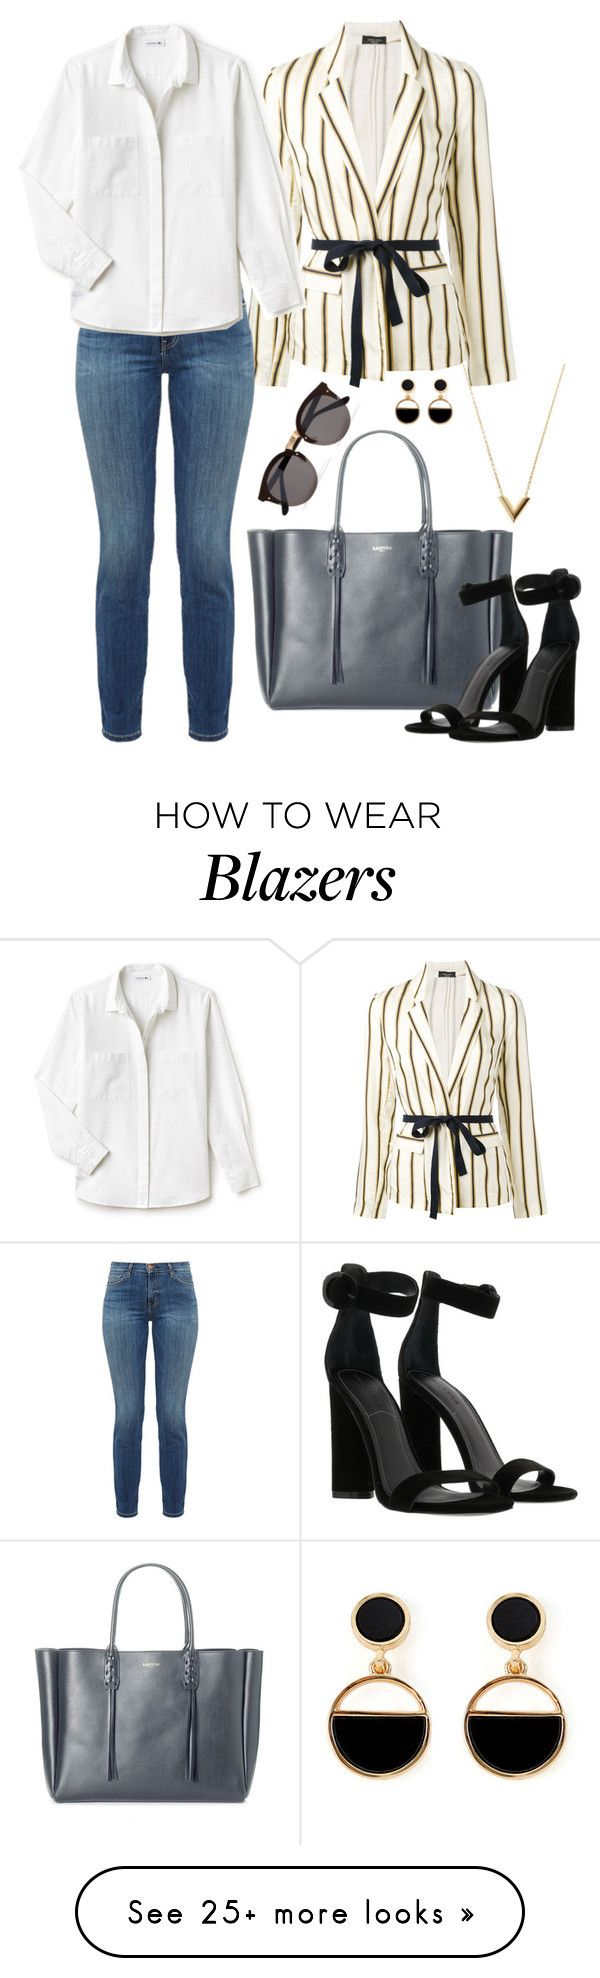 """Untitled #1751"" by aginica on Polyvore featuring Roberto Collina, Current/Elliott, Lacoste, Lanvin, Kendall + Kylie, Illesteva, Warehouse and Louis Vuitton"